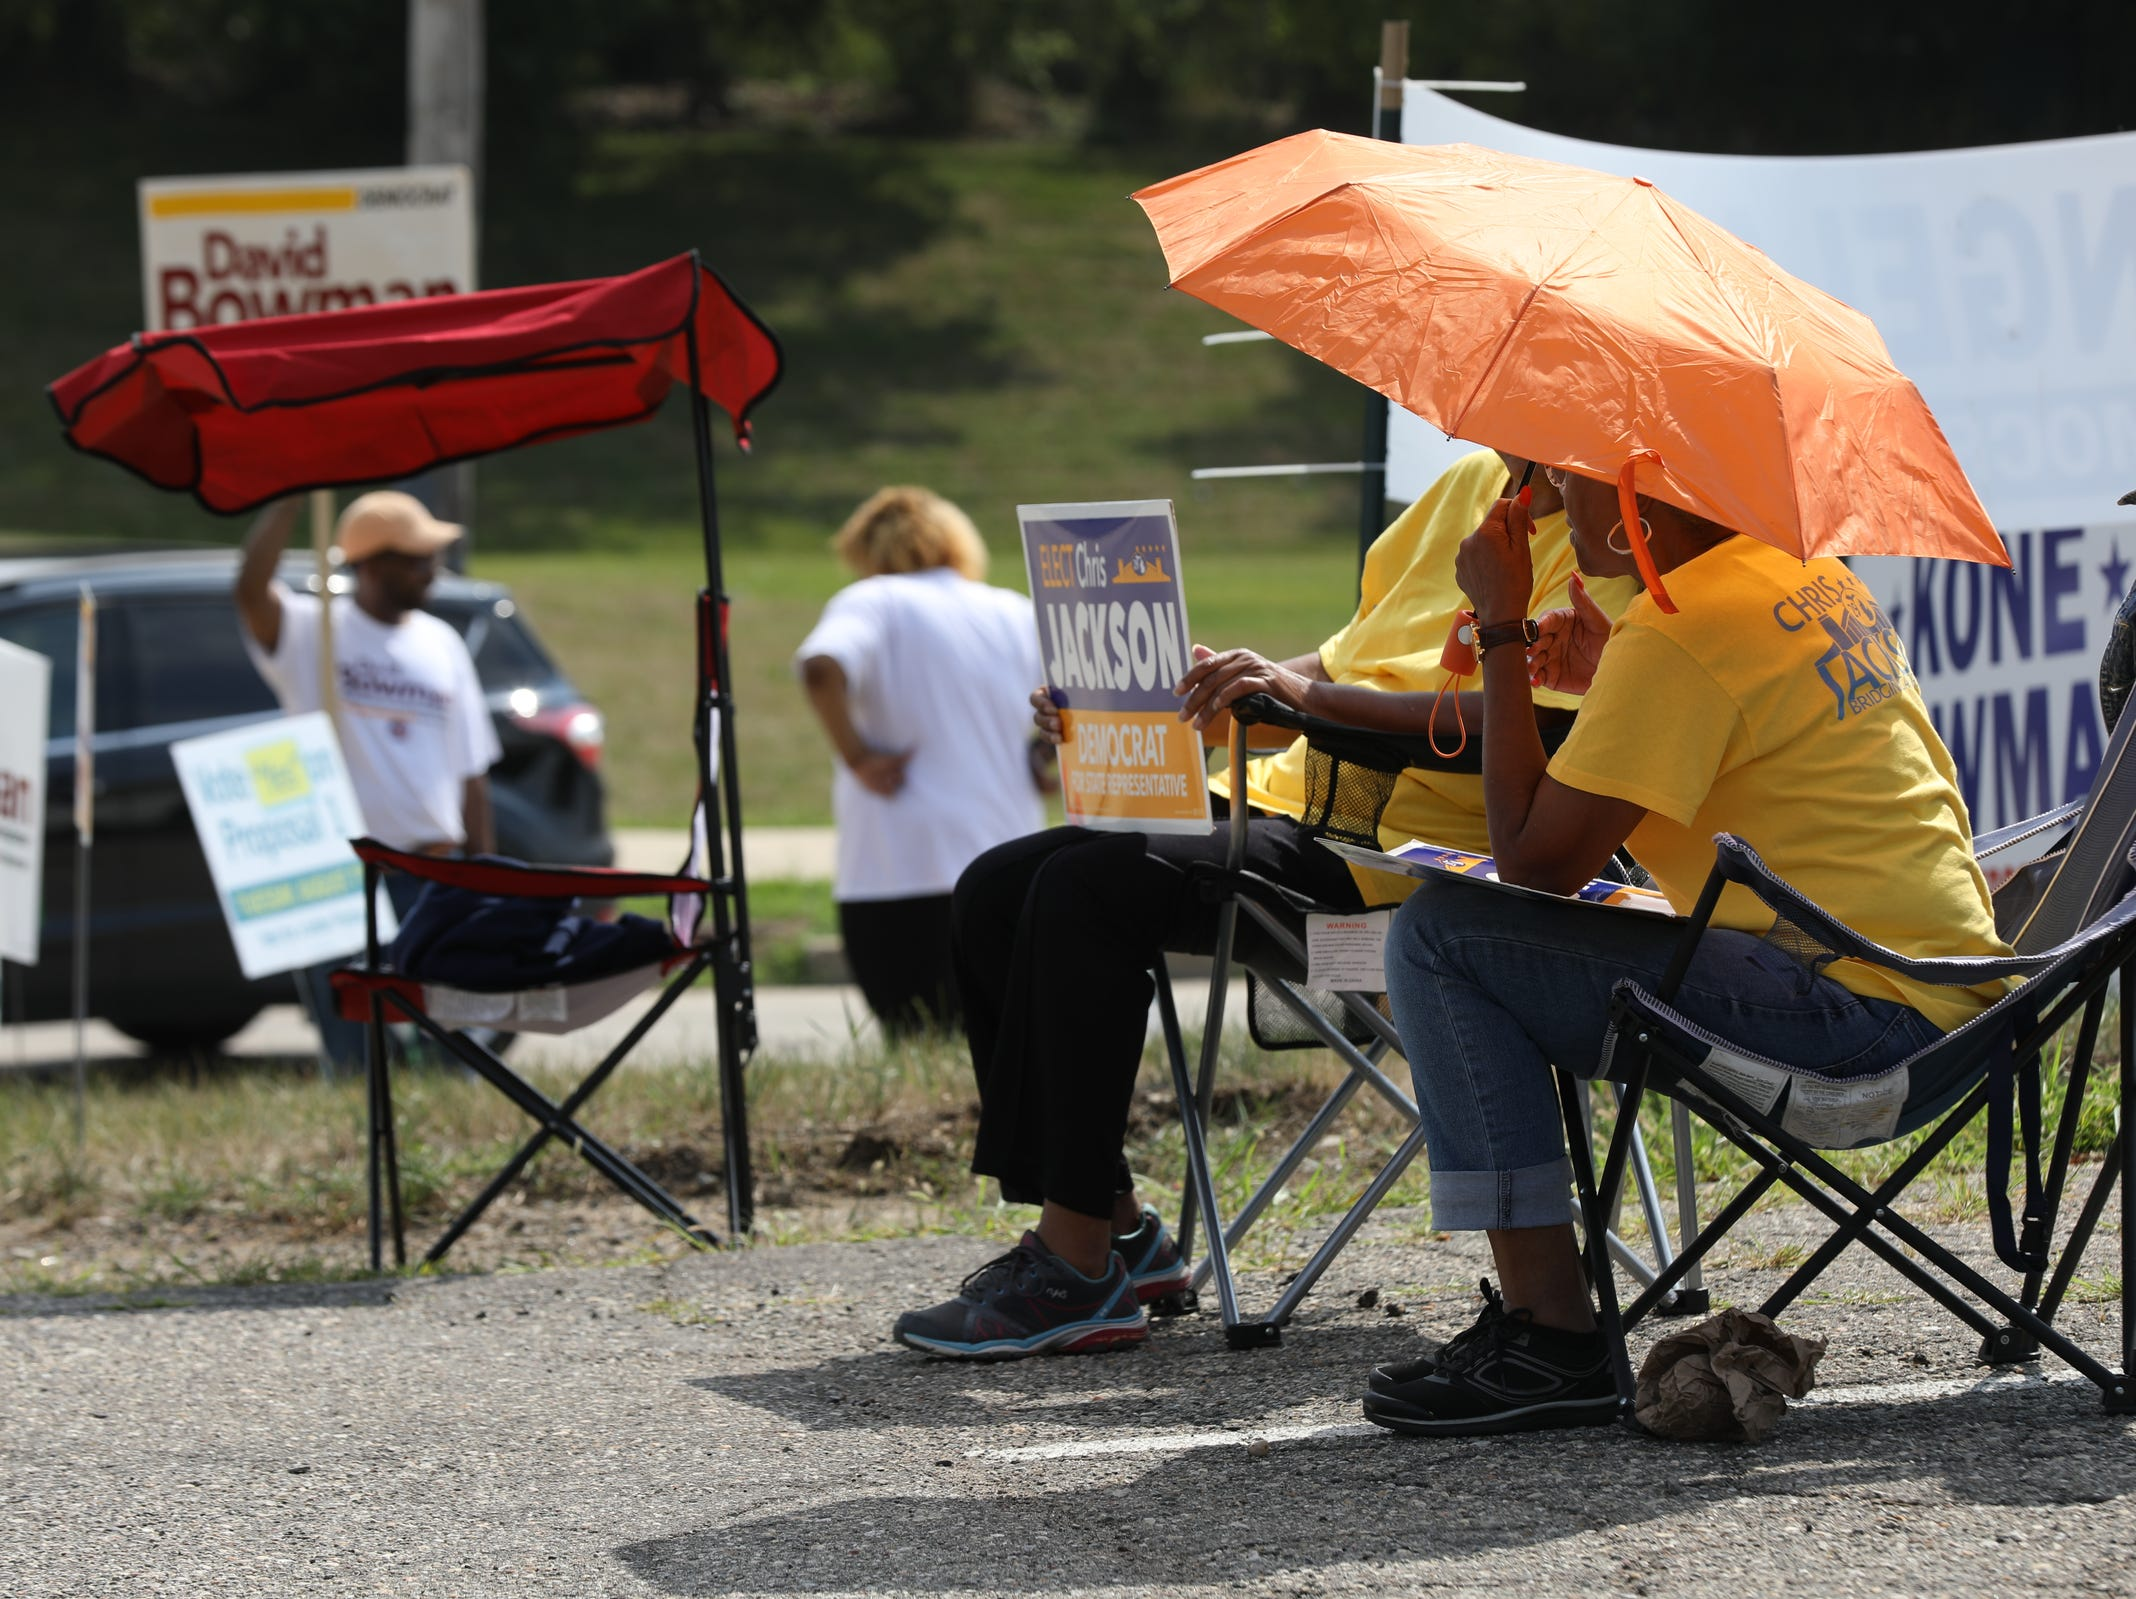 Political supporters attempt to stay cool in the hot sun while passing out pamphlets at the Bowens Center in Pontiac on Tuesday, August 7, 2018.